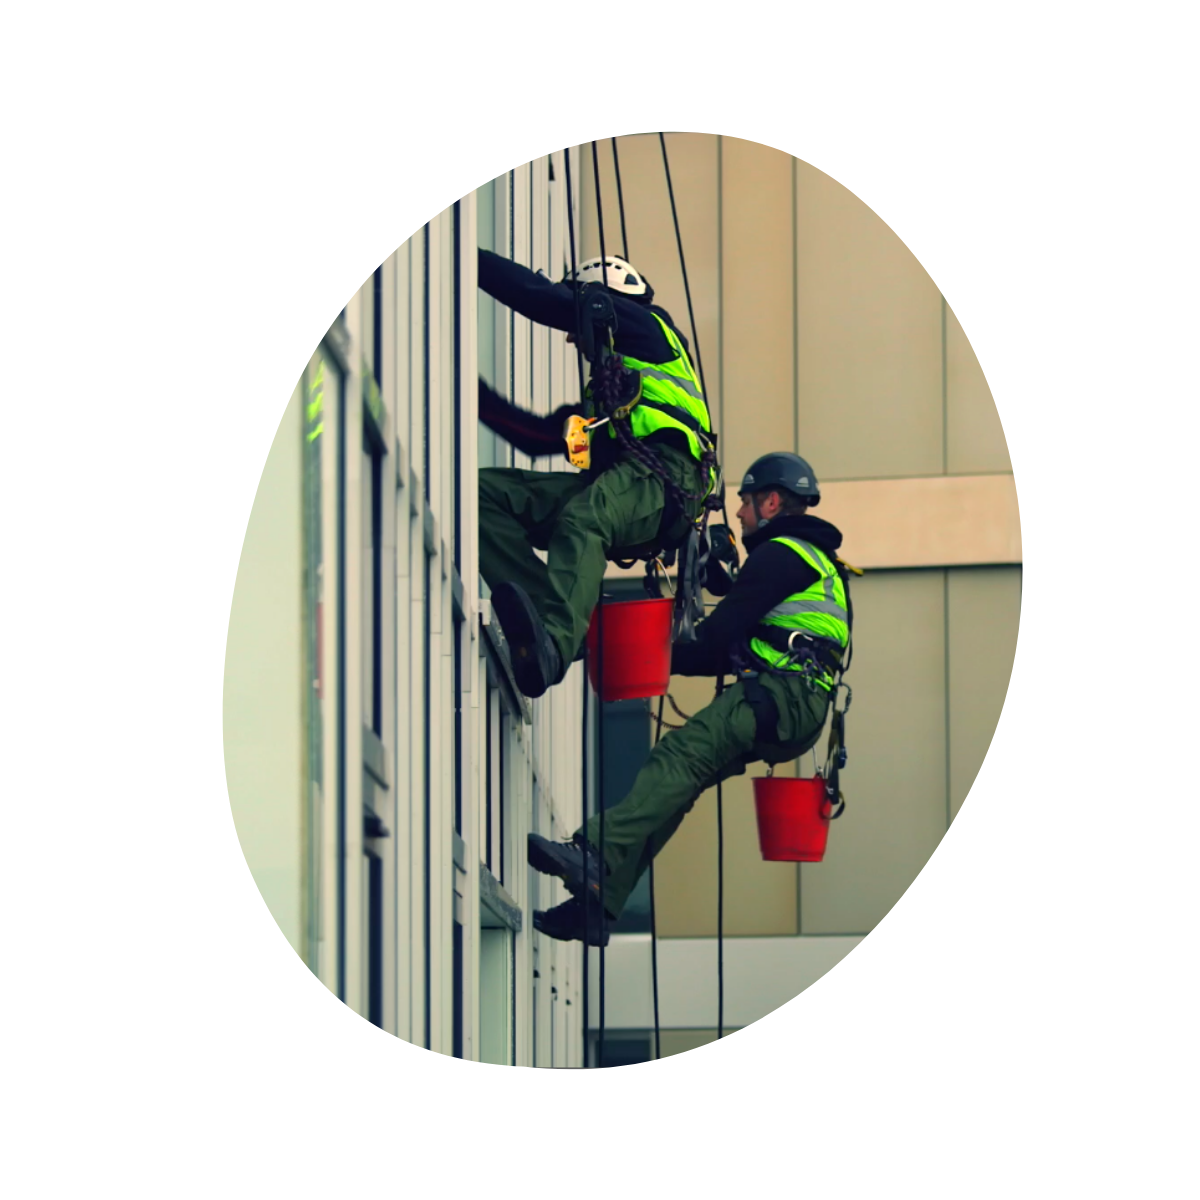 Commercial Window Cleaning - Abseil Window Cleaning